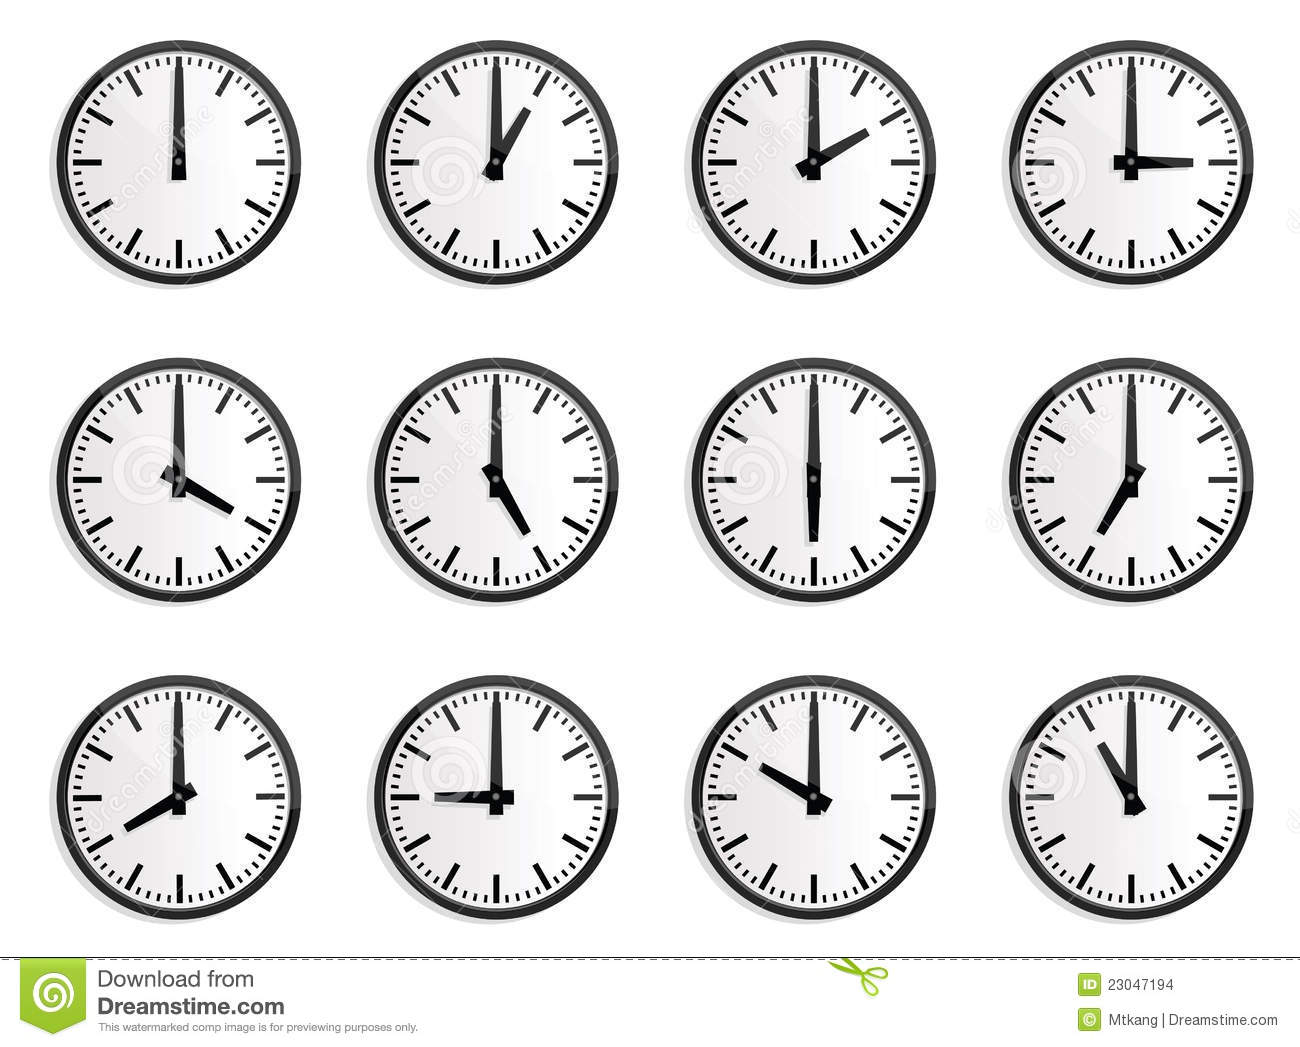 World Time Zone, Wall Clock Stock Vector